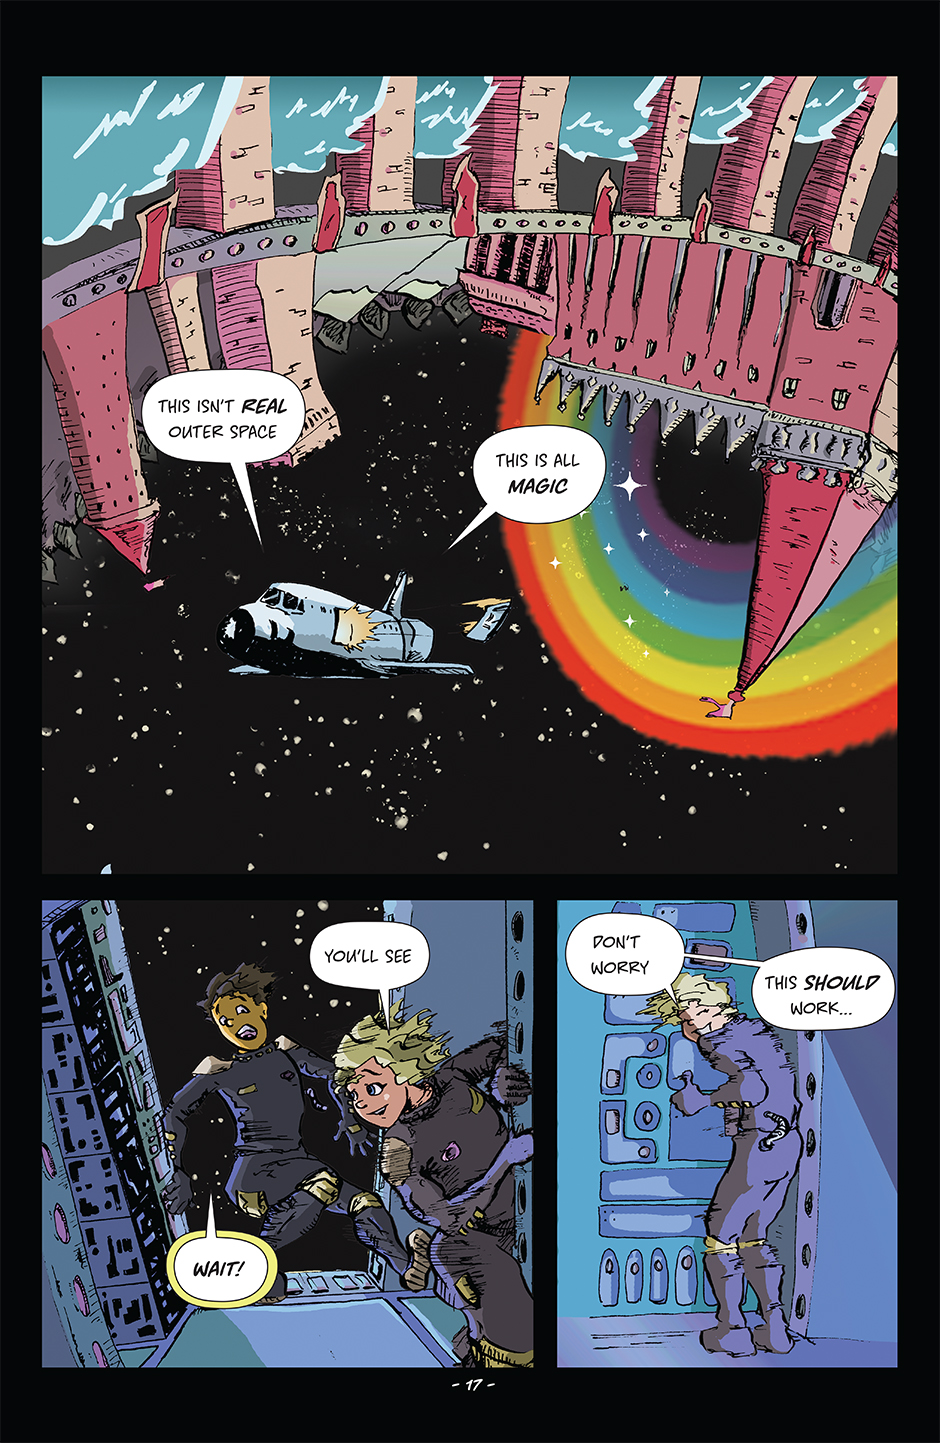 Issue 4, page 17